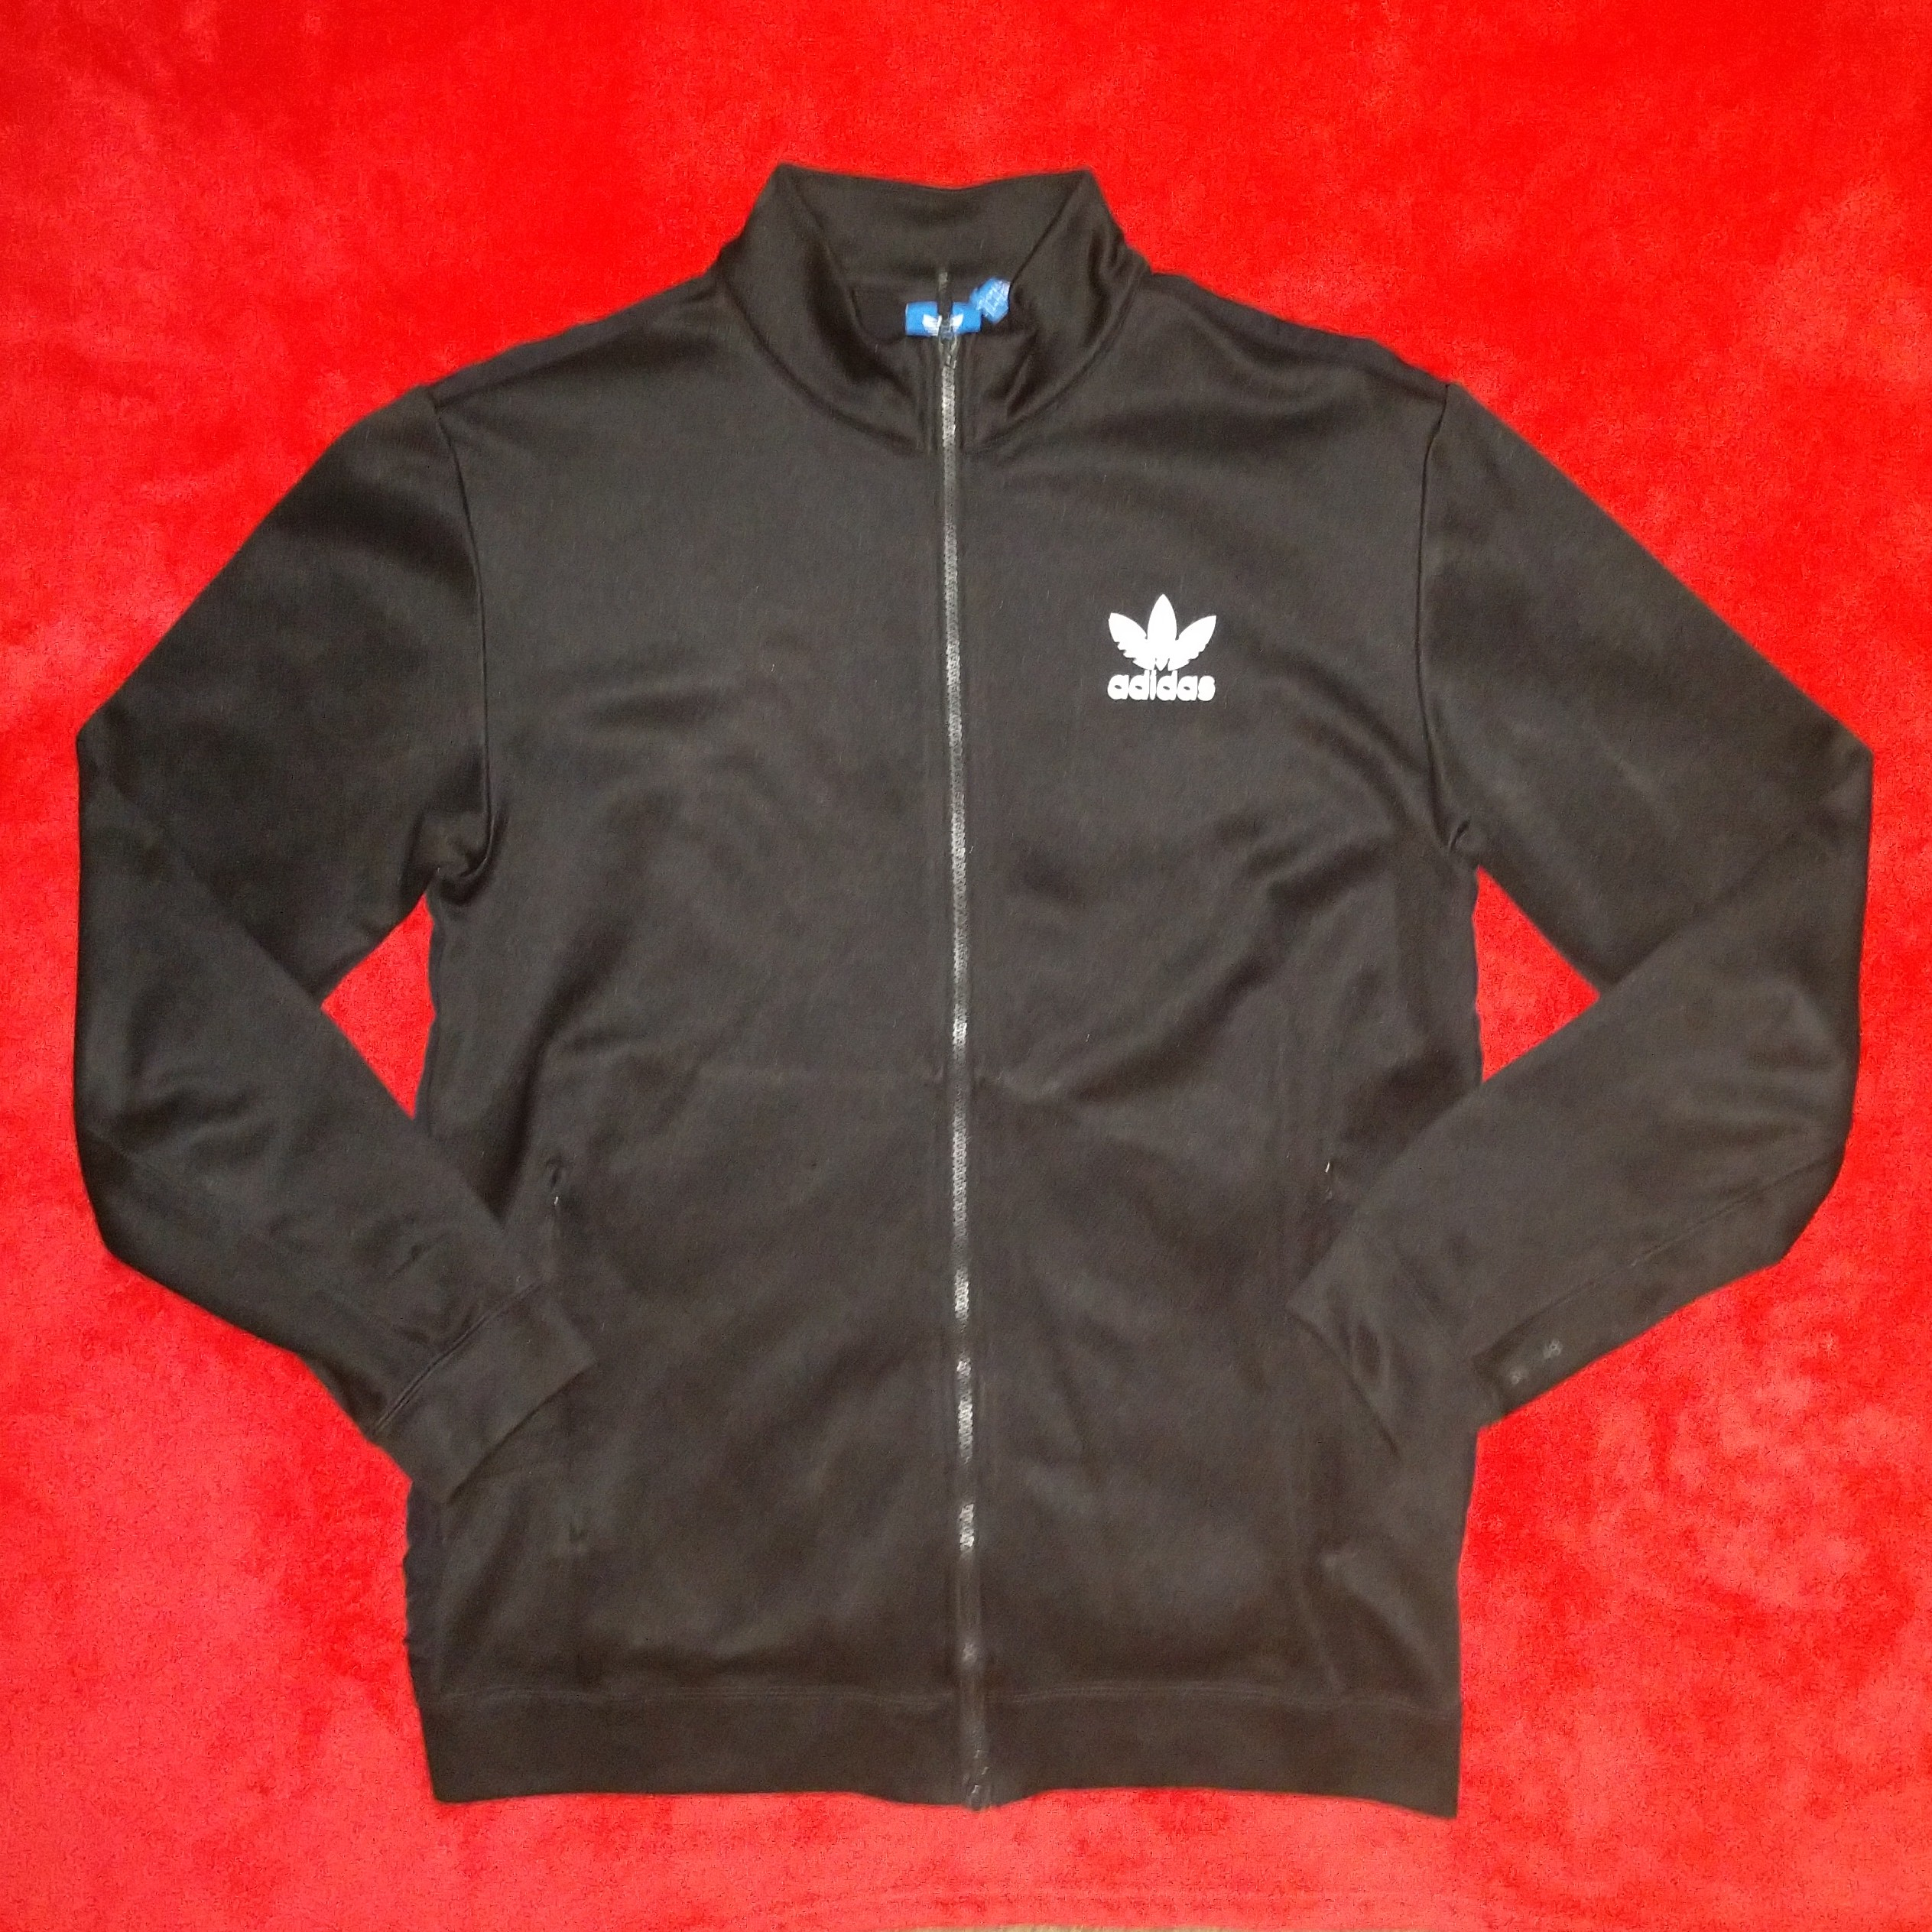 Product Image 1 - Authentic Adidas Jacket Includes front pockets Logo